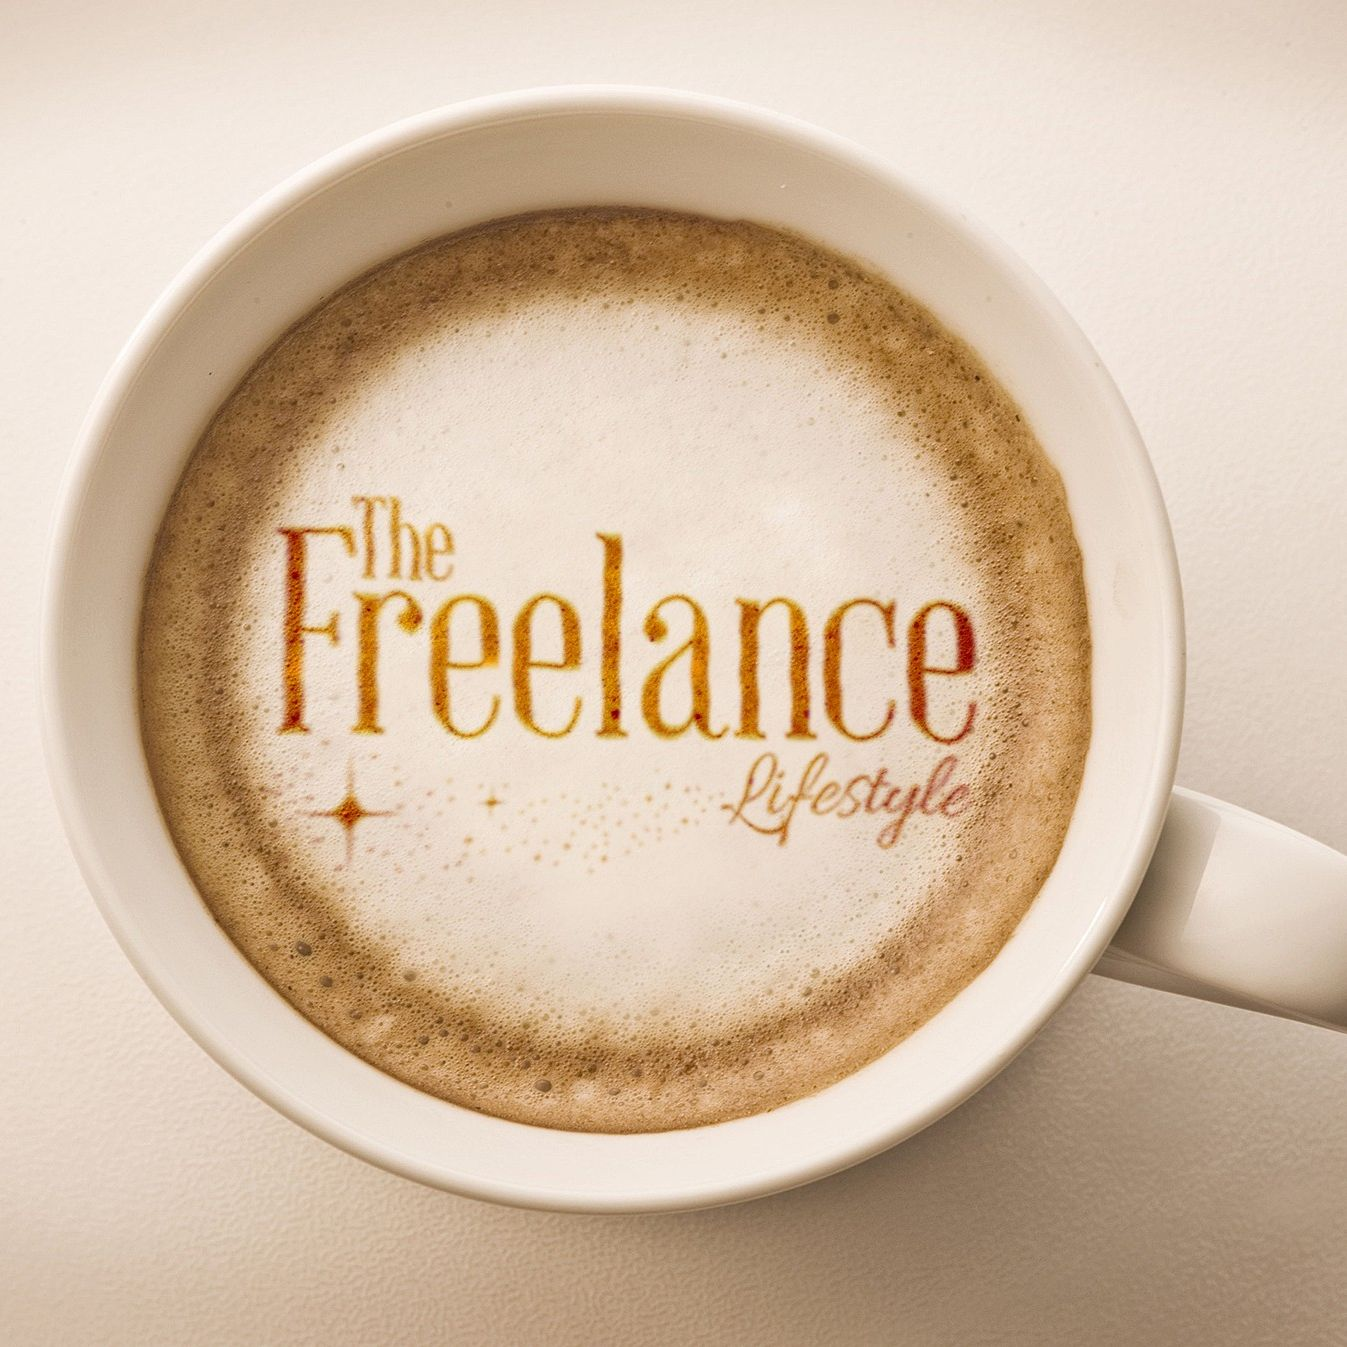 The Freelancer's Teabreak